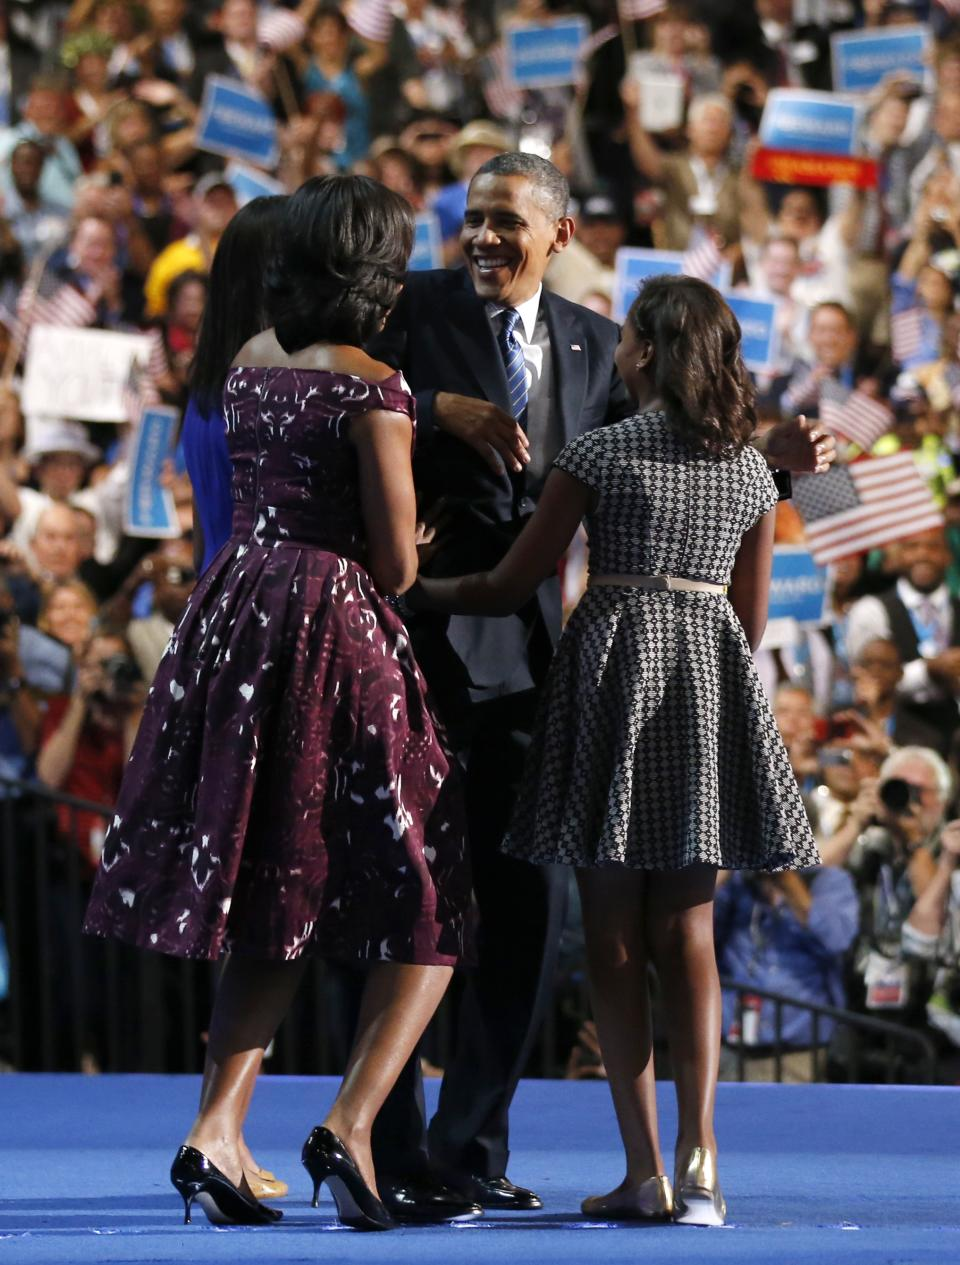 President Barack Obama is joined on stage by first lady Michelle Obama, left, their children Malia and Sasha, right, on the final day of the Democratic National Convention in Charlotte, N.C., Thursday, Sept. 6, 2012. (AP Photo/Jae C. Hong)